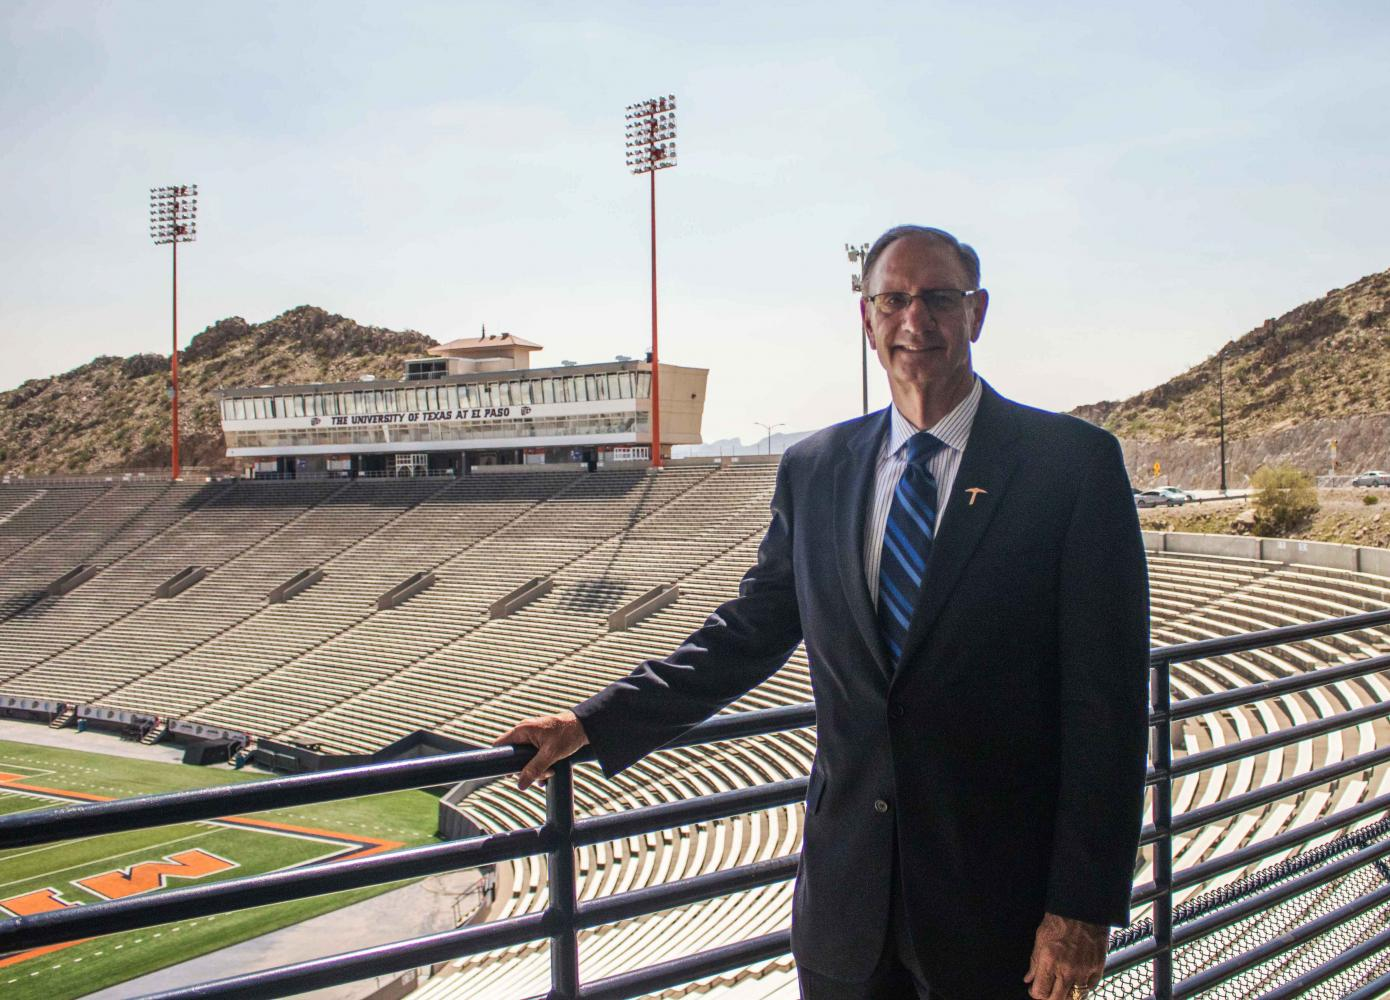 Former UTEP Director of Athletics Bob Stull shares his memories and says his goodbyes to El Paso.